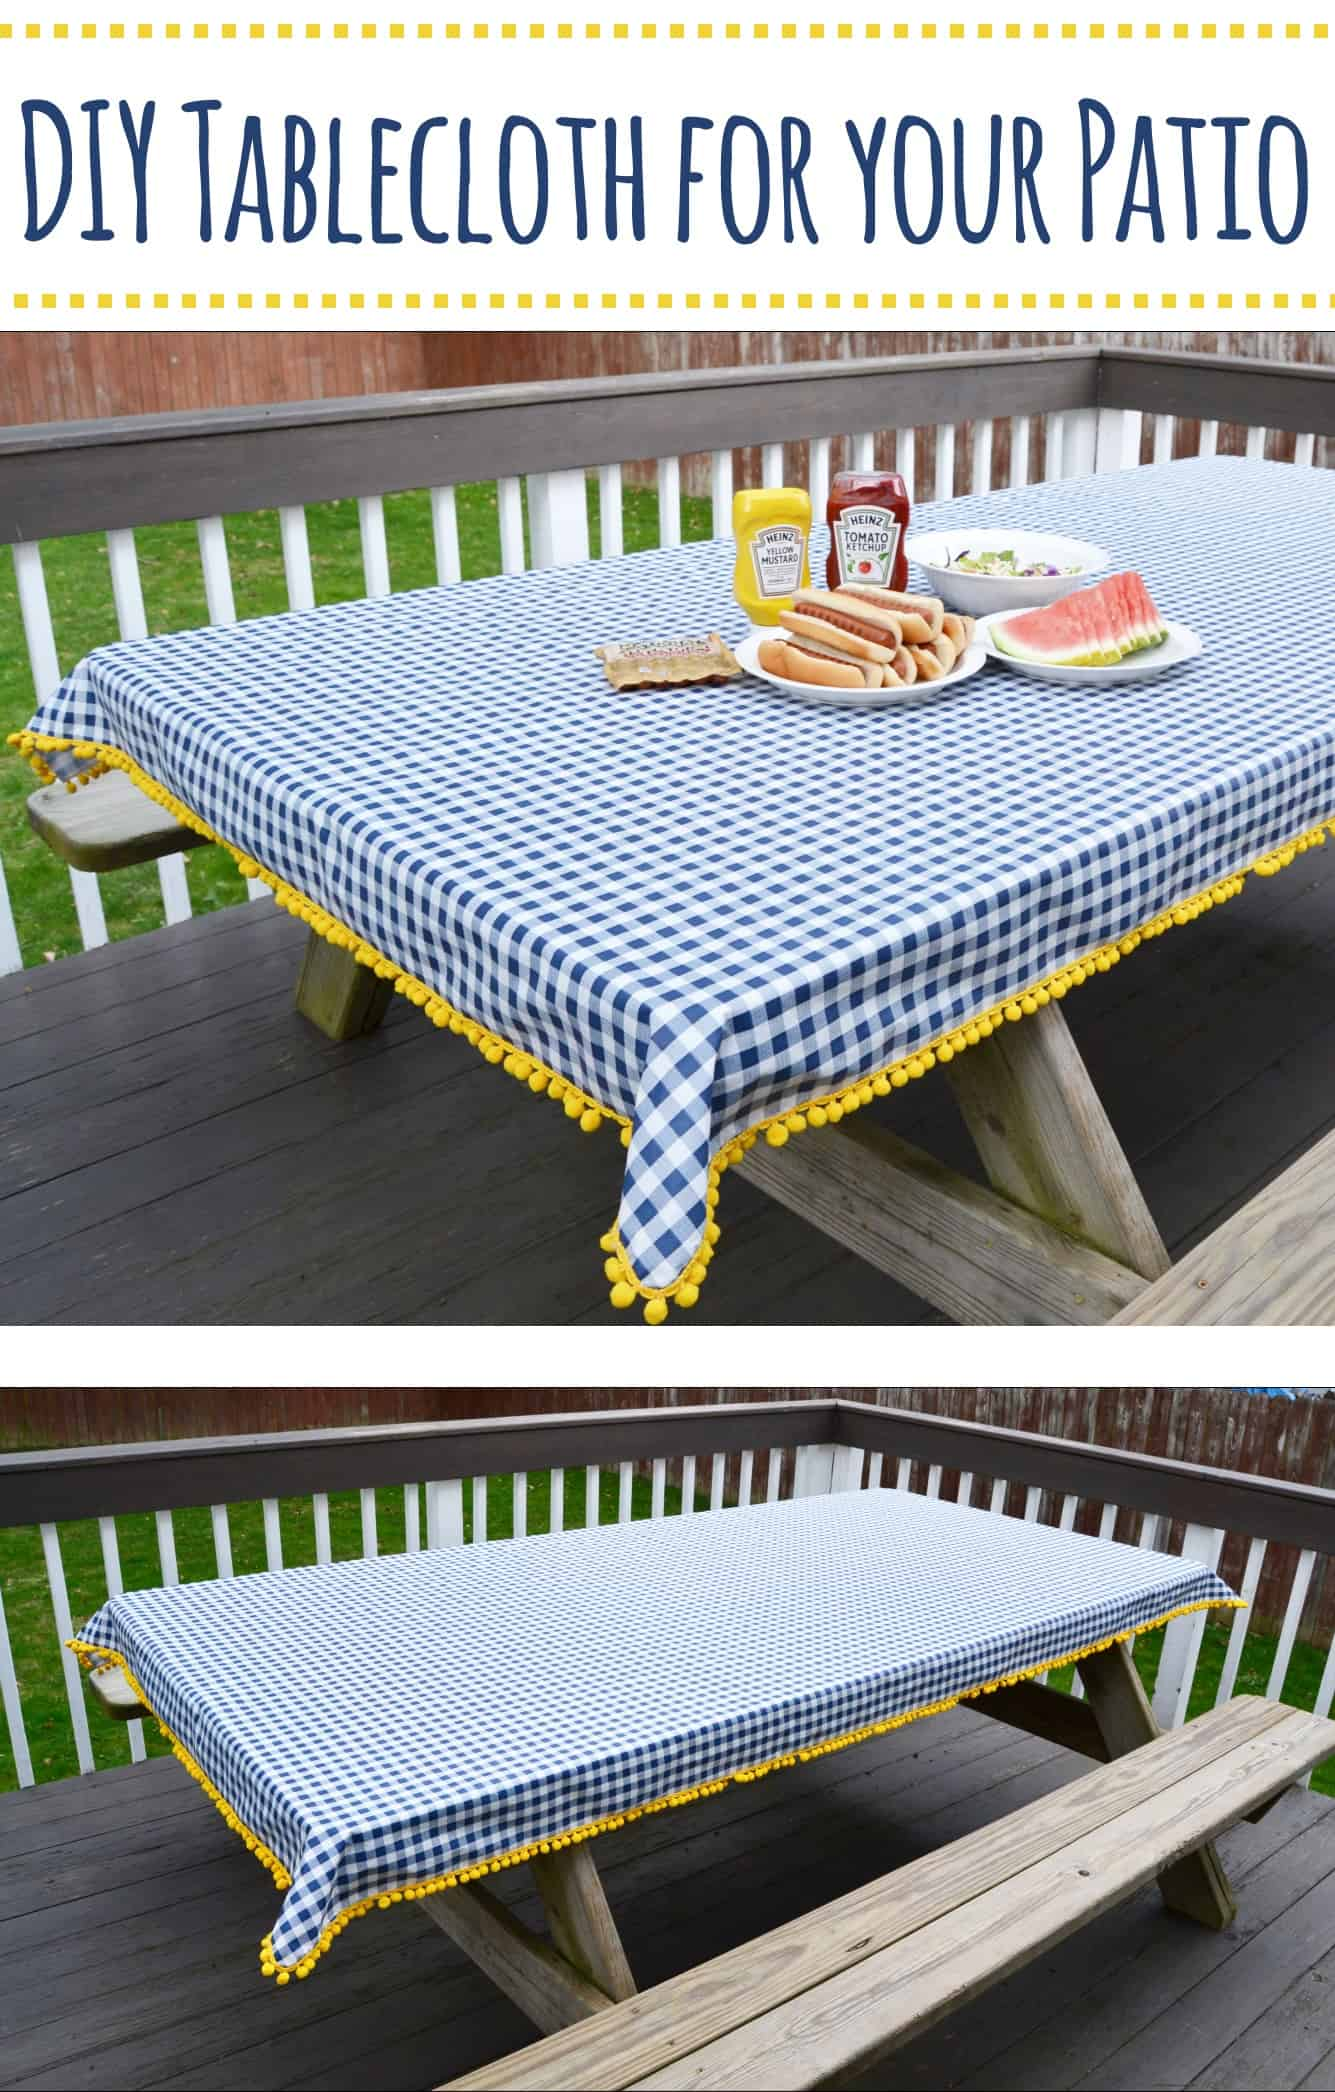 Making A Patio With Stones: How To Make A Tablecloth For Your Patio [Sew Or No Sew